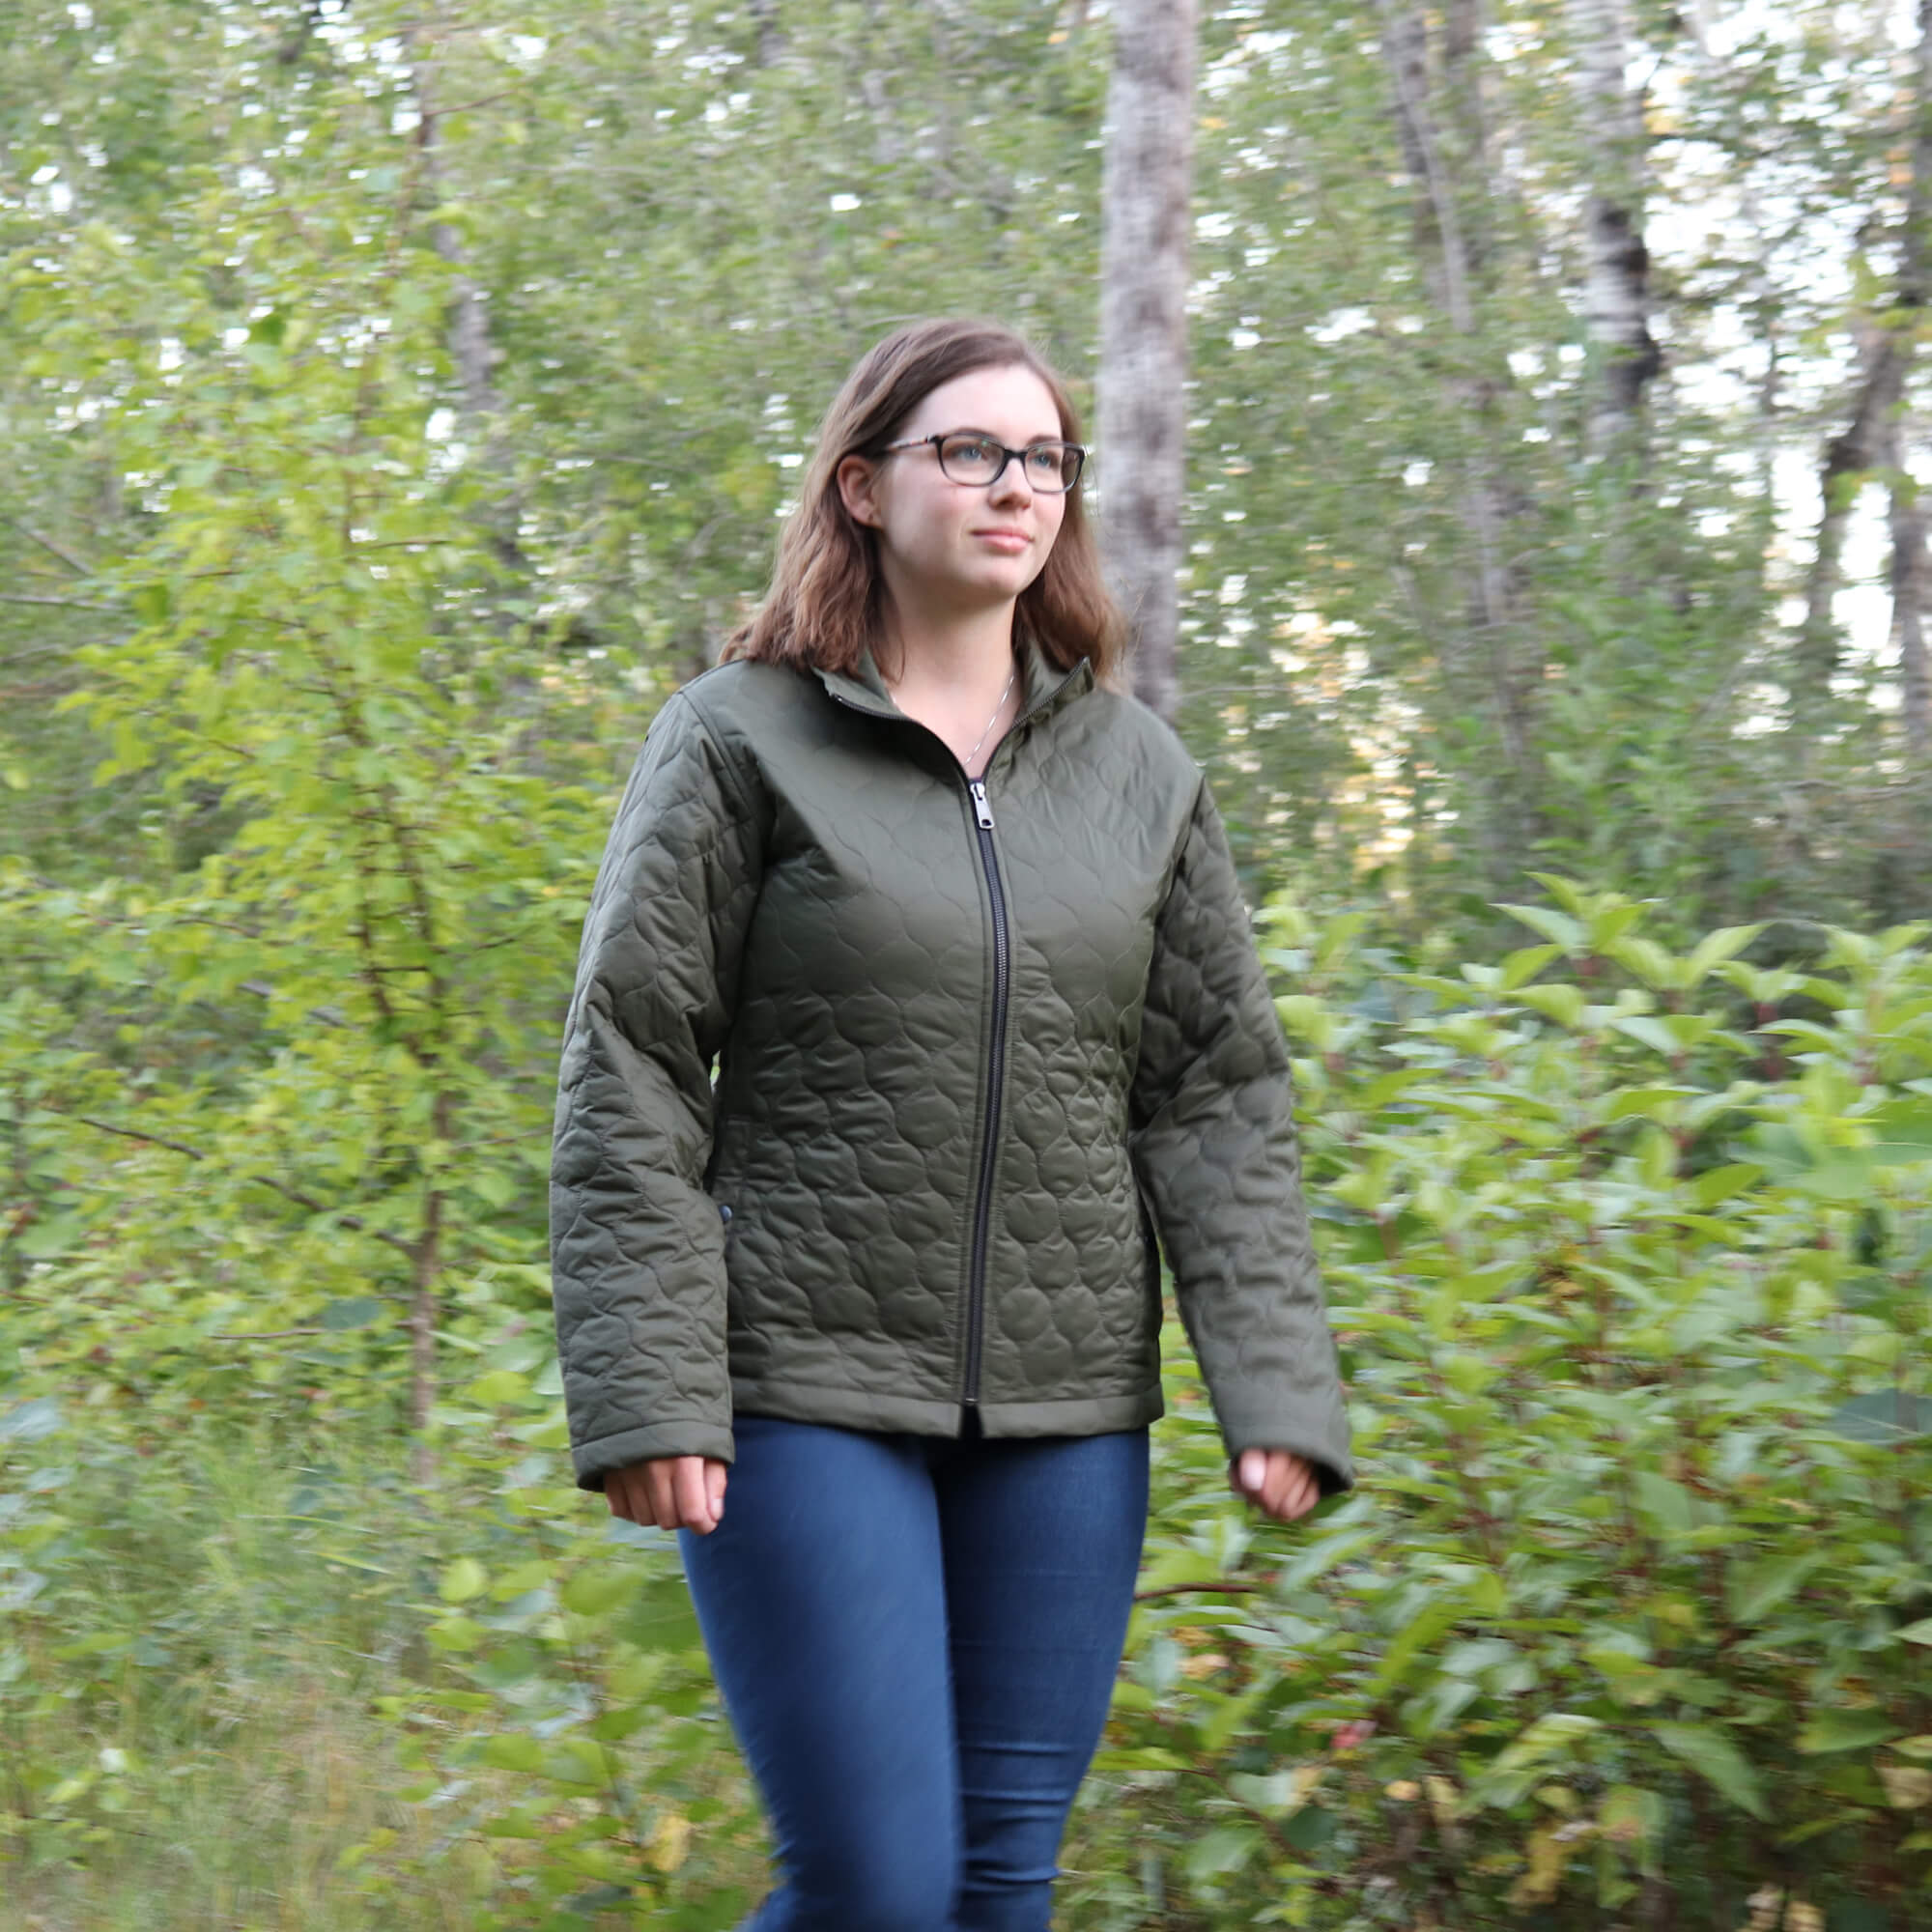 https://0901.nccdn.net/4_2/000/000/084/3b1/wj29-young-woman-walking-in-the-woods-in-a-quilted-jacket.jpg